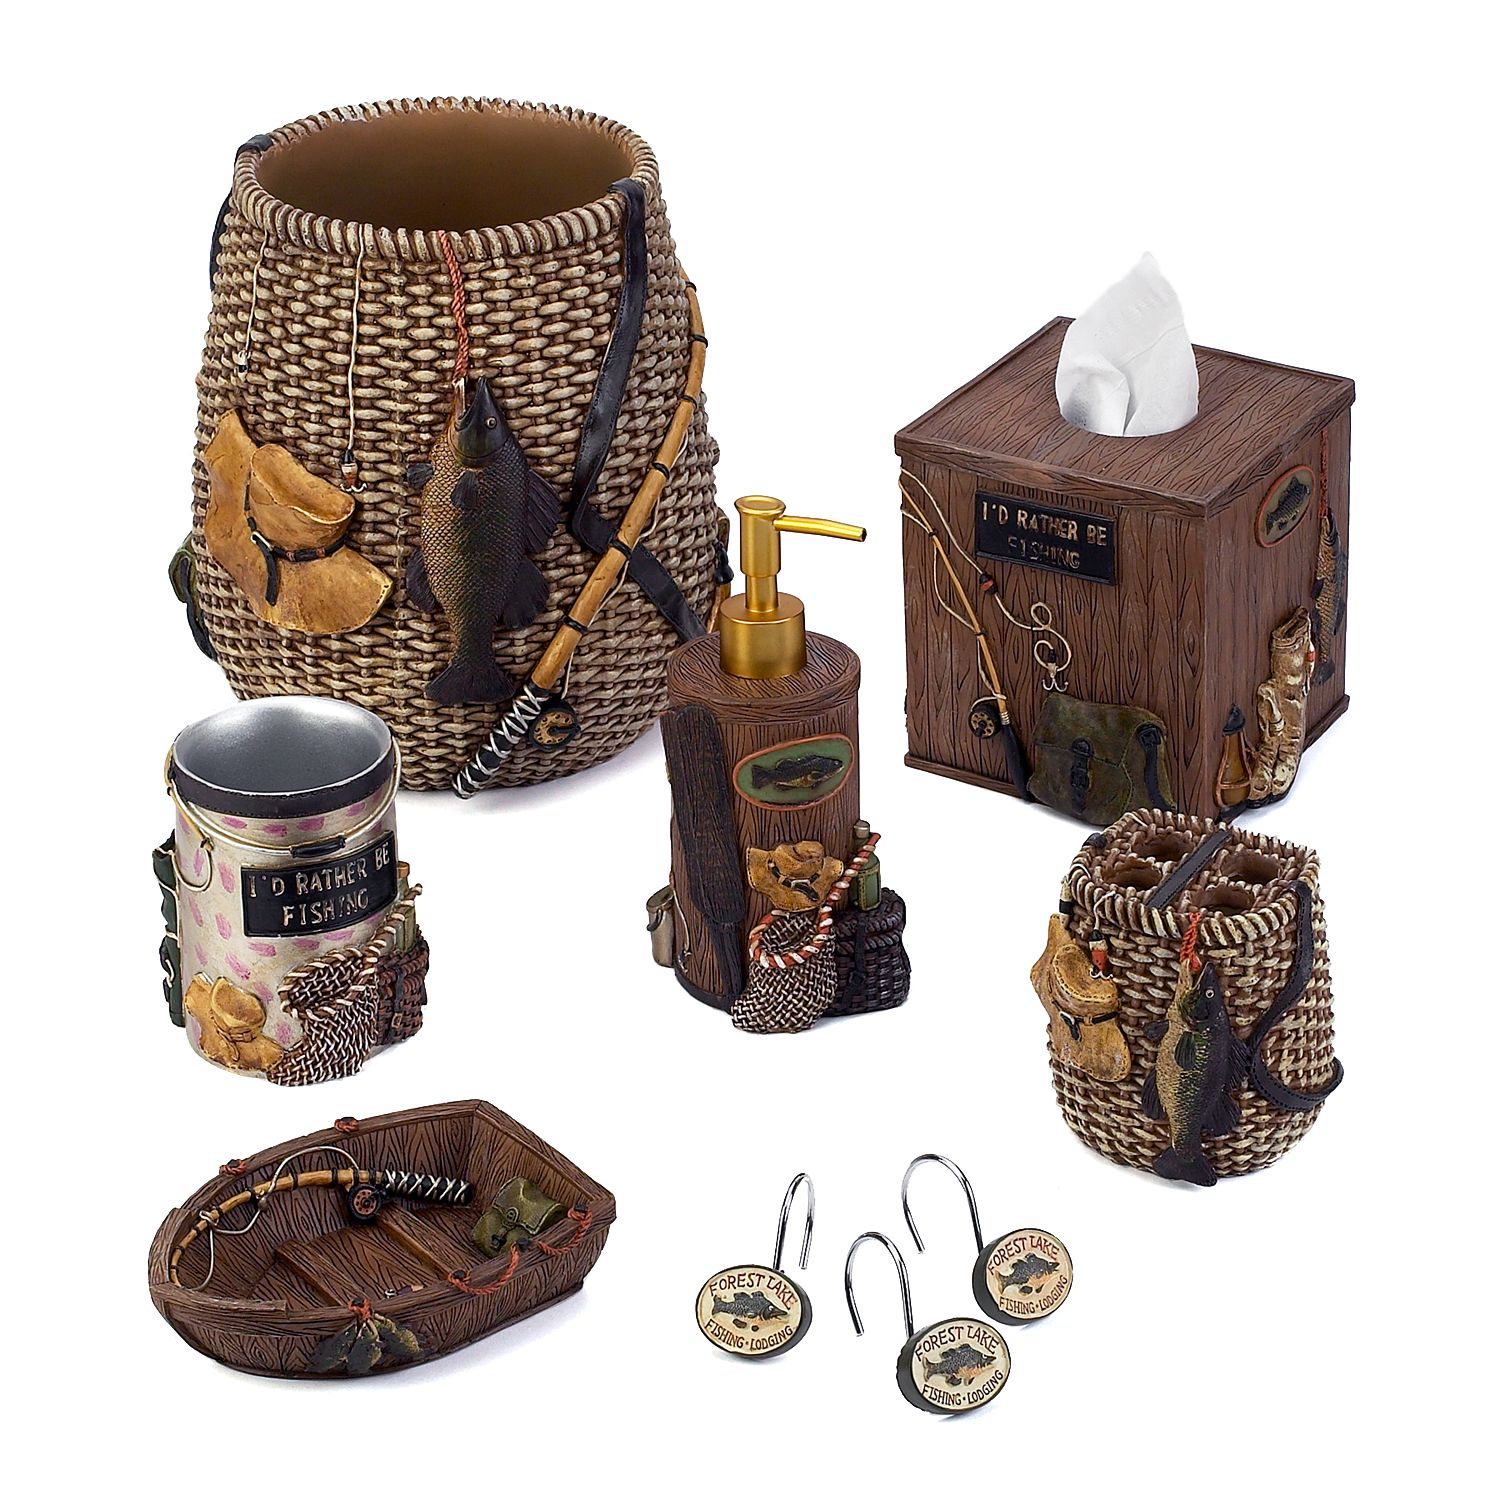 Merveilleux Avanti Rather Be Fishing Bathroom Accessories Collection